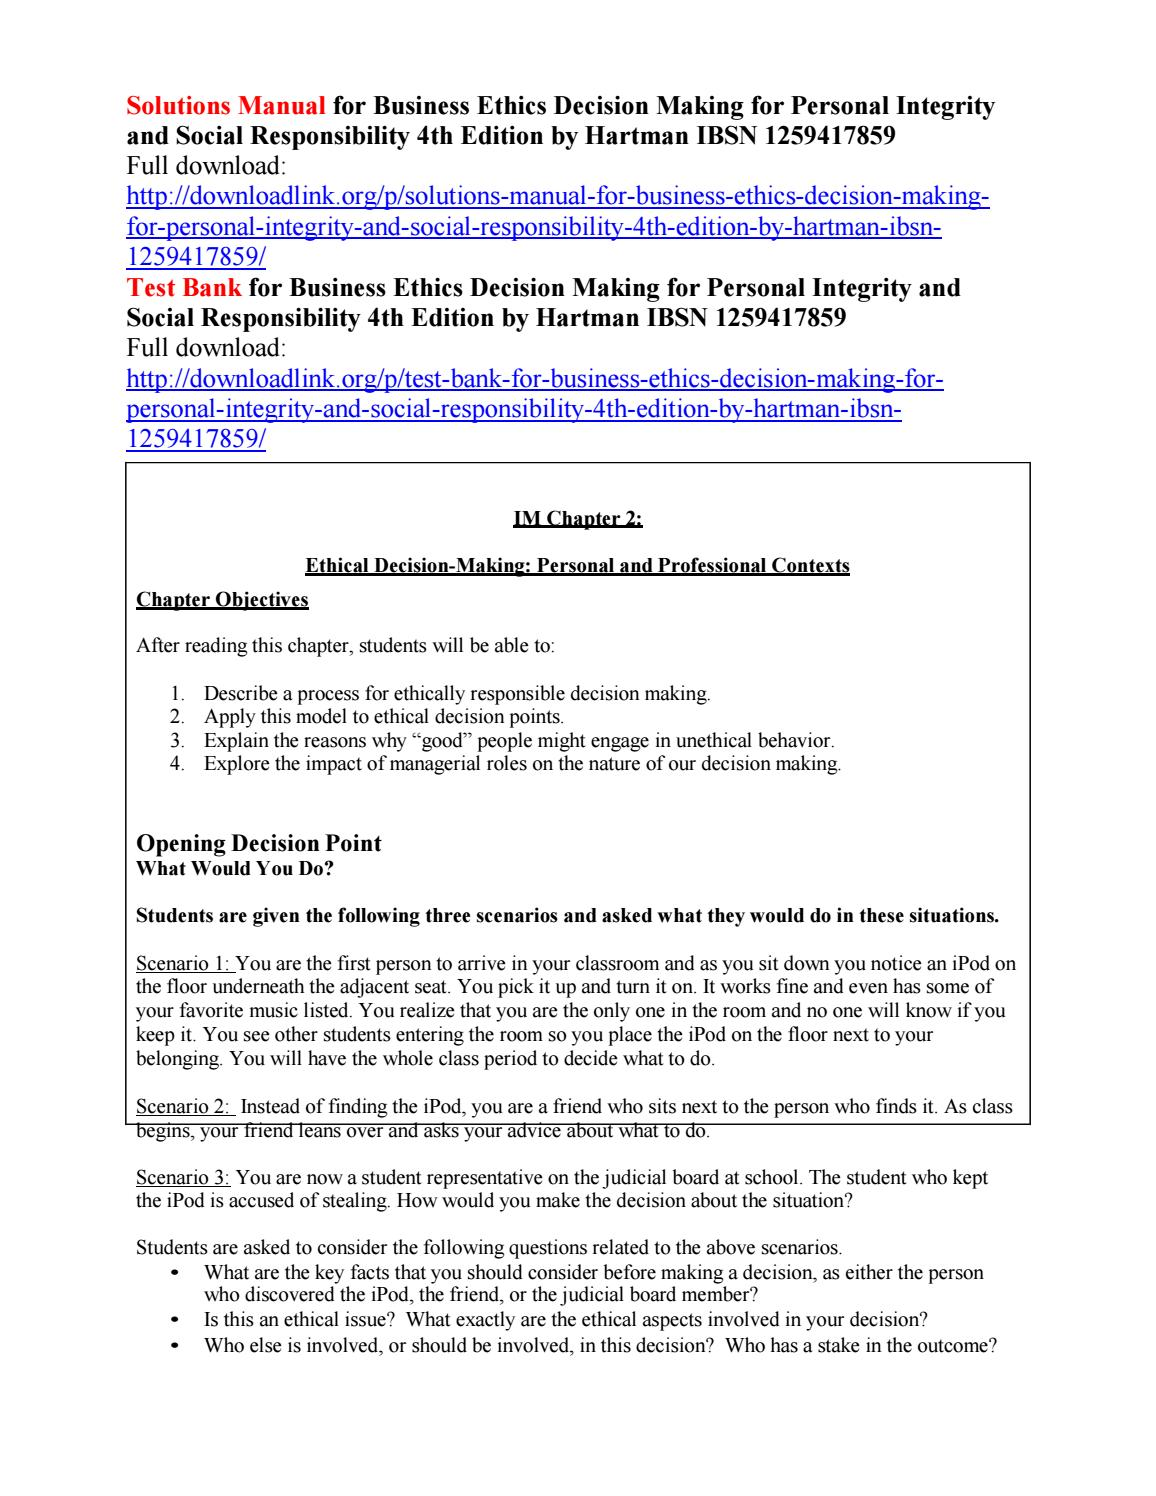 Solutions manual for business ethics decision making for